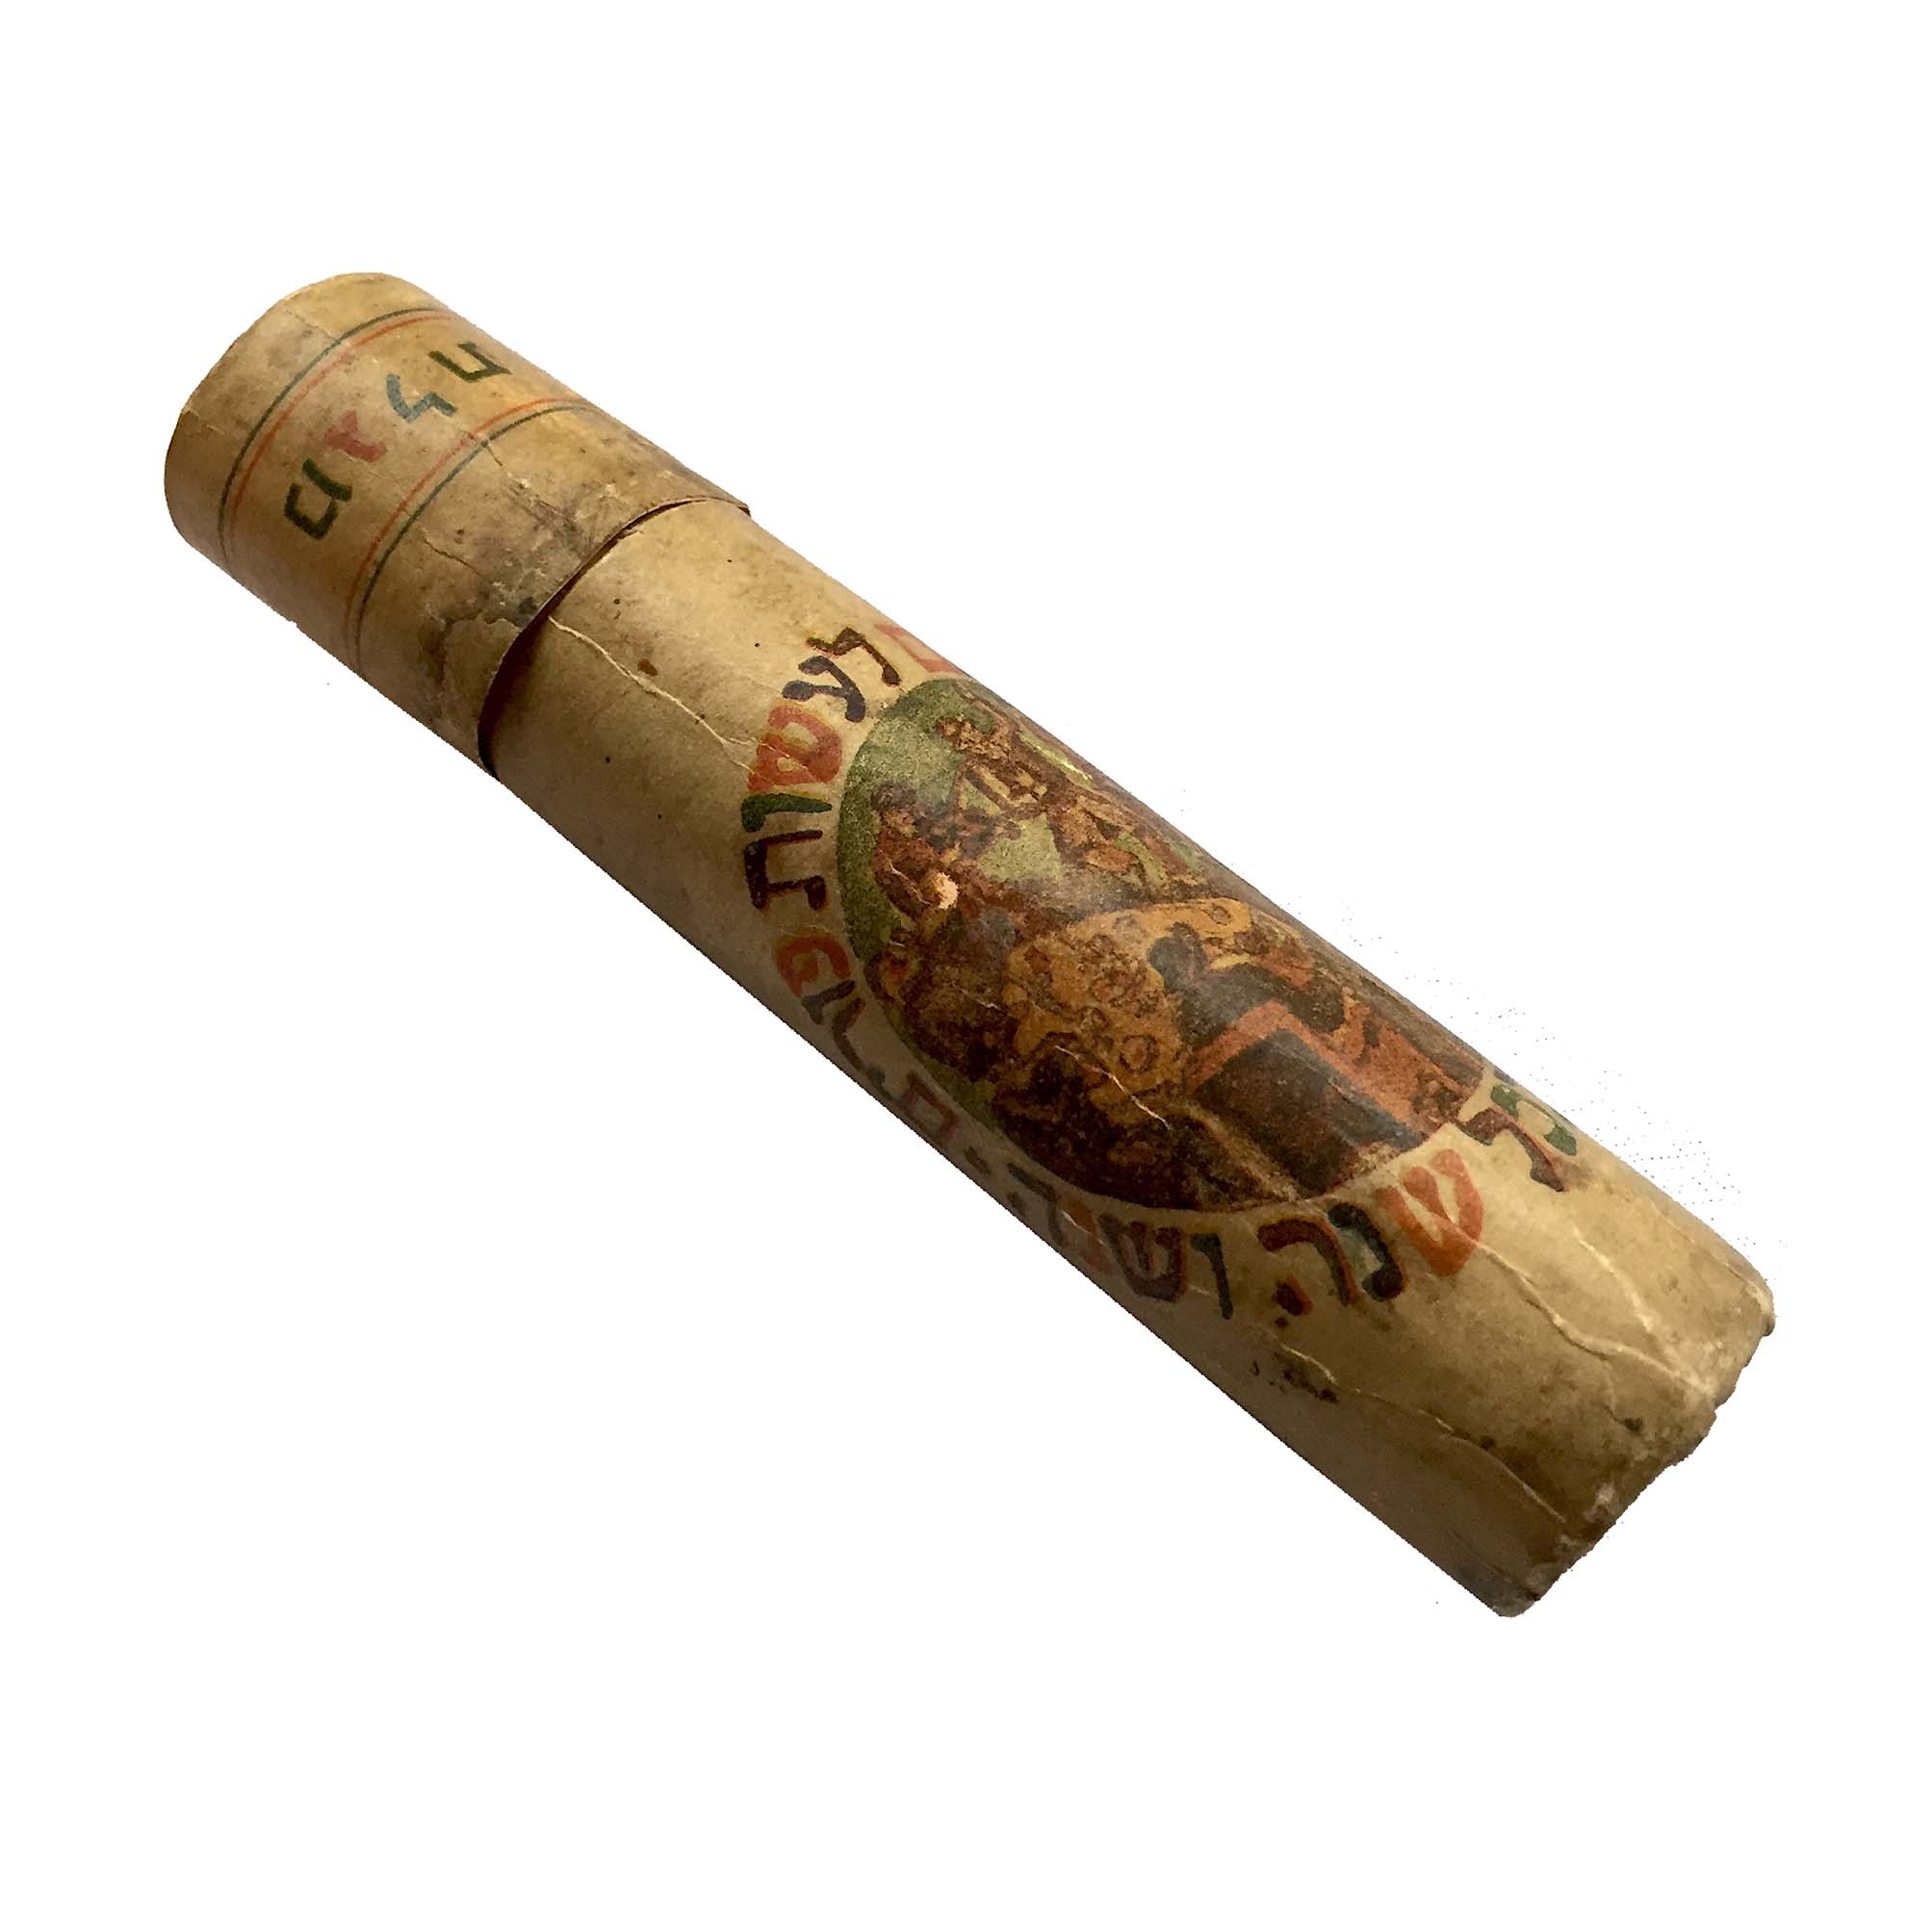 5806-Book-of-Esther-Scroll-1950-Shell-1-free-N.jpg